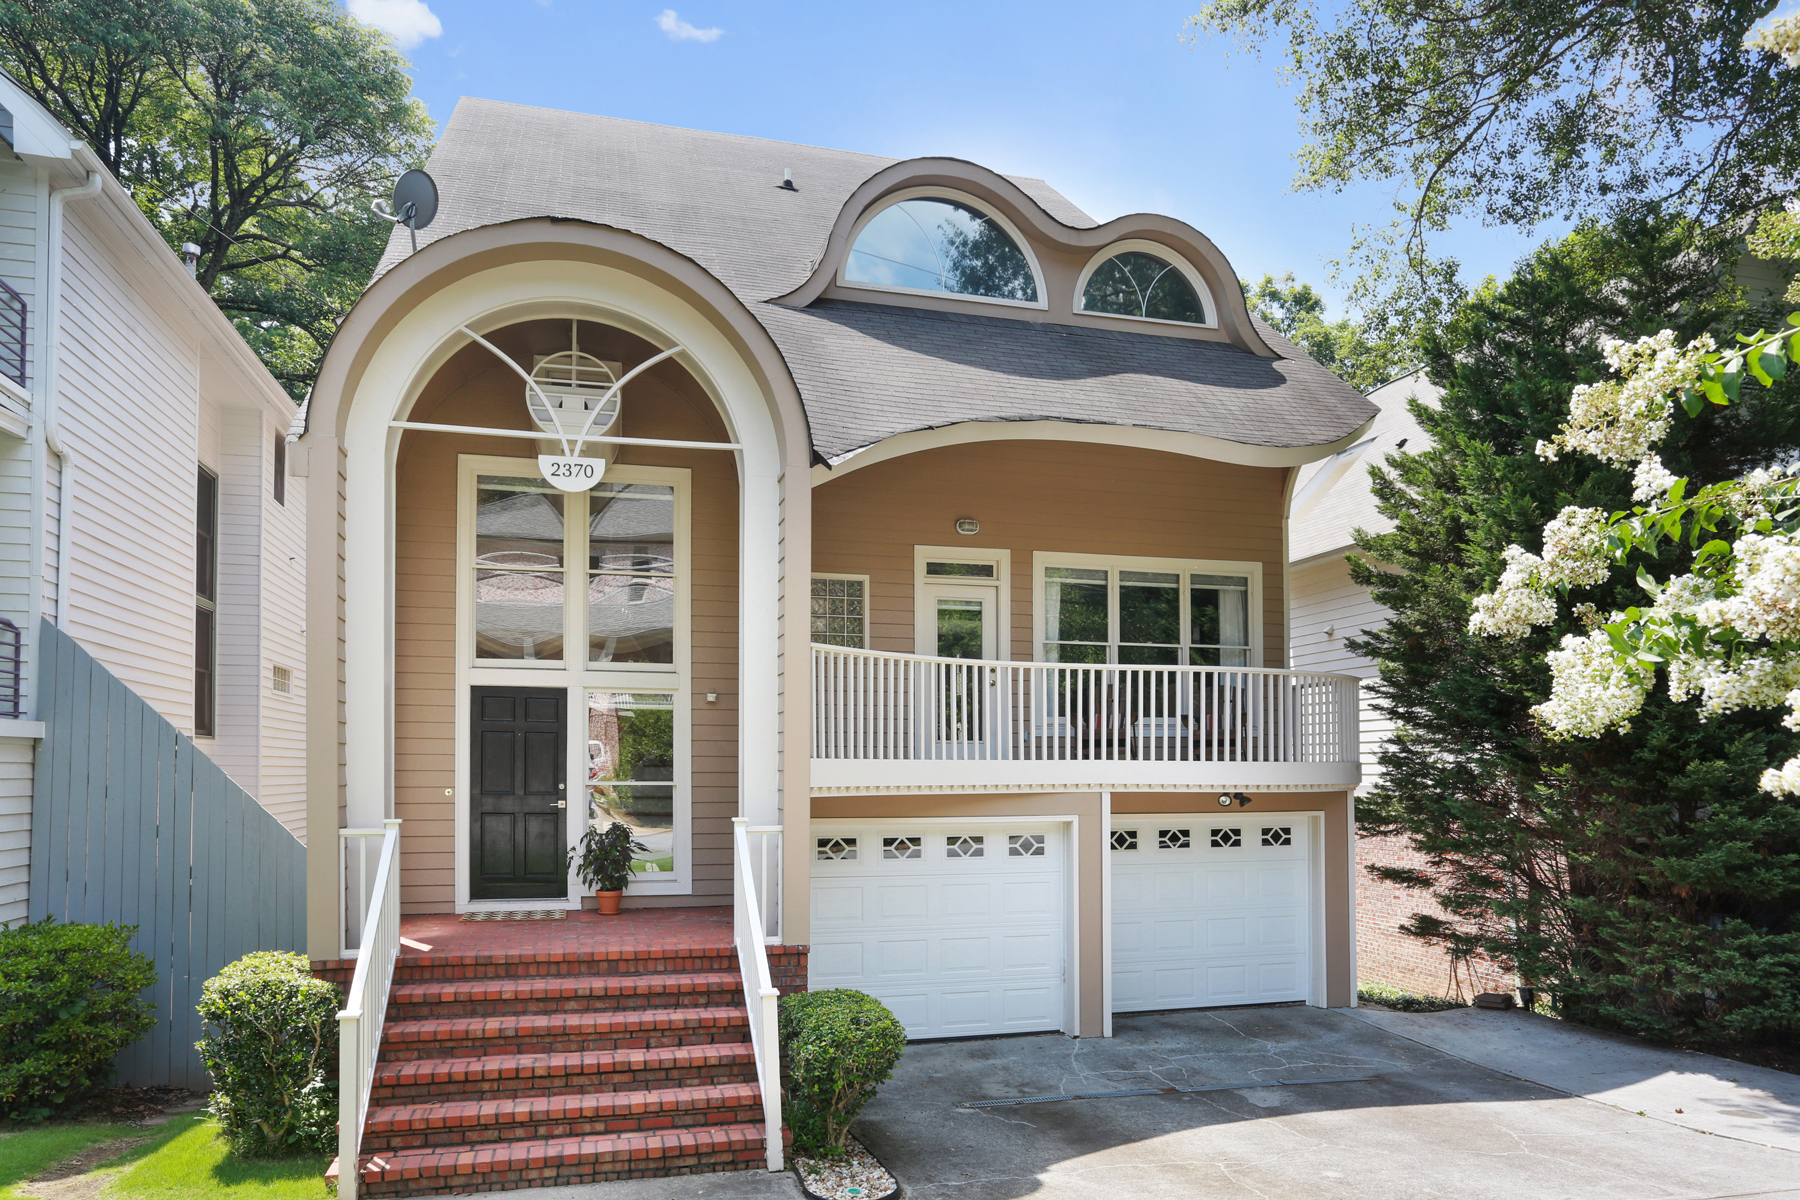 Single Family Home for Sale at Inviting Home With Contemporary Flare 2370 Coosawattee Drive Atlanta, Georgia, 30319 United States